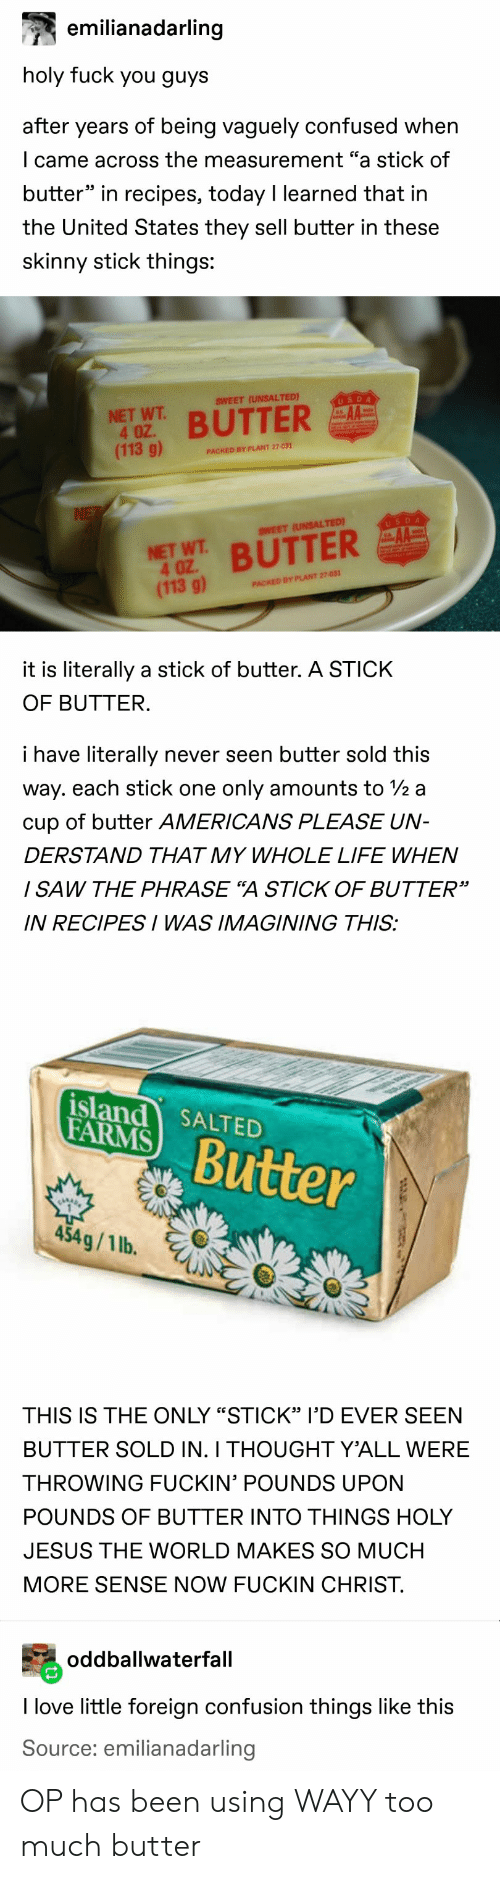 "Confused, Fuck You, and Jesus: emilianadarling  holy fuck you guys  after years of being vaguely confused when  I came across the measurement ""a stick of  butter"" in recipes, today I learned that in  the United States they sell butter in these  skinny stick things:  SWEET (UNSALTED)  USDA  NET WT  4 OZ.  (113 g)  BUTTER  PACKED BY PLANT 27-031  NE  USDA  SWEET (UNSALTED)  NET WT BUTTER  4 OZ  (113 g)  PACKED BY PLANT 27-031  it is literally a stick of butter. A STICK  OF BUTTER.  i have literally  never seen butter sold this  way. each stick one  only amounts to /2 a  cup of butter AMERICANS PLEASE UN-  DERSTAND THAT MY WHOLE LIFE WHEN  / SAW THE PHRASE ""A STICK OF BUTTER""  IN RECIPESI WAS IMAGINING THIS:  island SALTED  FARMS  Butter  454g/1 lb.  THIS IS THE ONLY ""STICK"" l'D EVER SEEN  BUTTER SOLD IN. I THOUGHT Y'ALL WERE  THROWING FUCKIN' POUNDS UPON  POUNDS OF BUTTER INTO THINGS HOLY  JESUS THE WORLD MAKES SO MUCH  MORE SENSE NOW FUCKIN CHRIST.  oddballwaterfall  I love little foreign confusion things like this  Source: emilianadarling OP has been using WAYY too much butter"